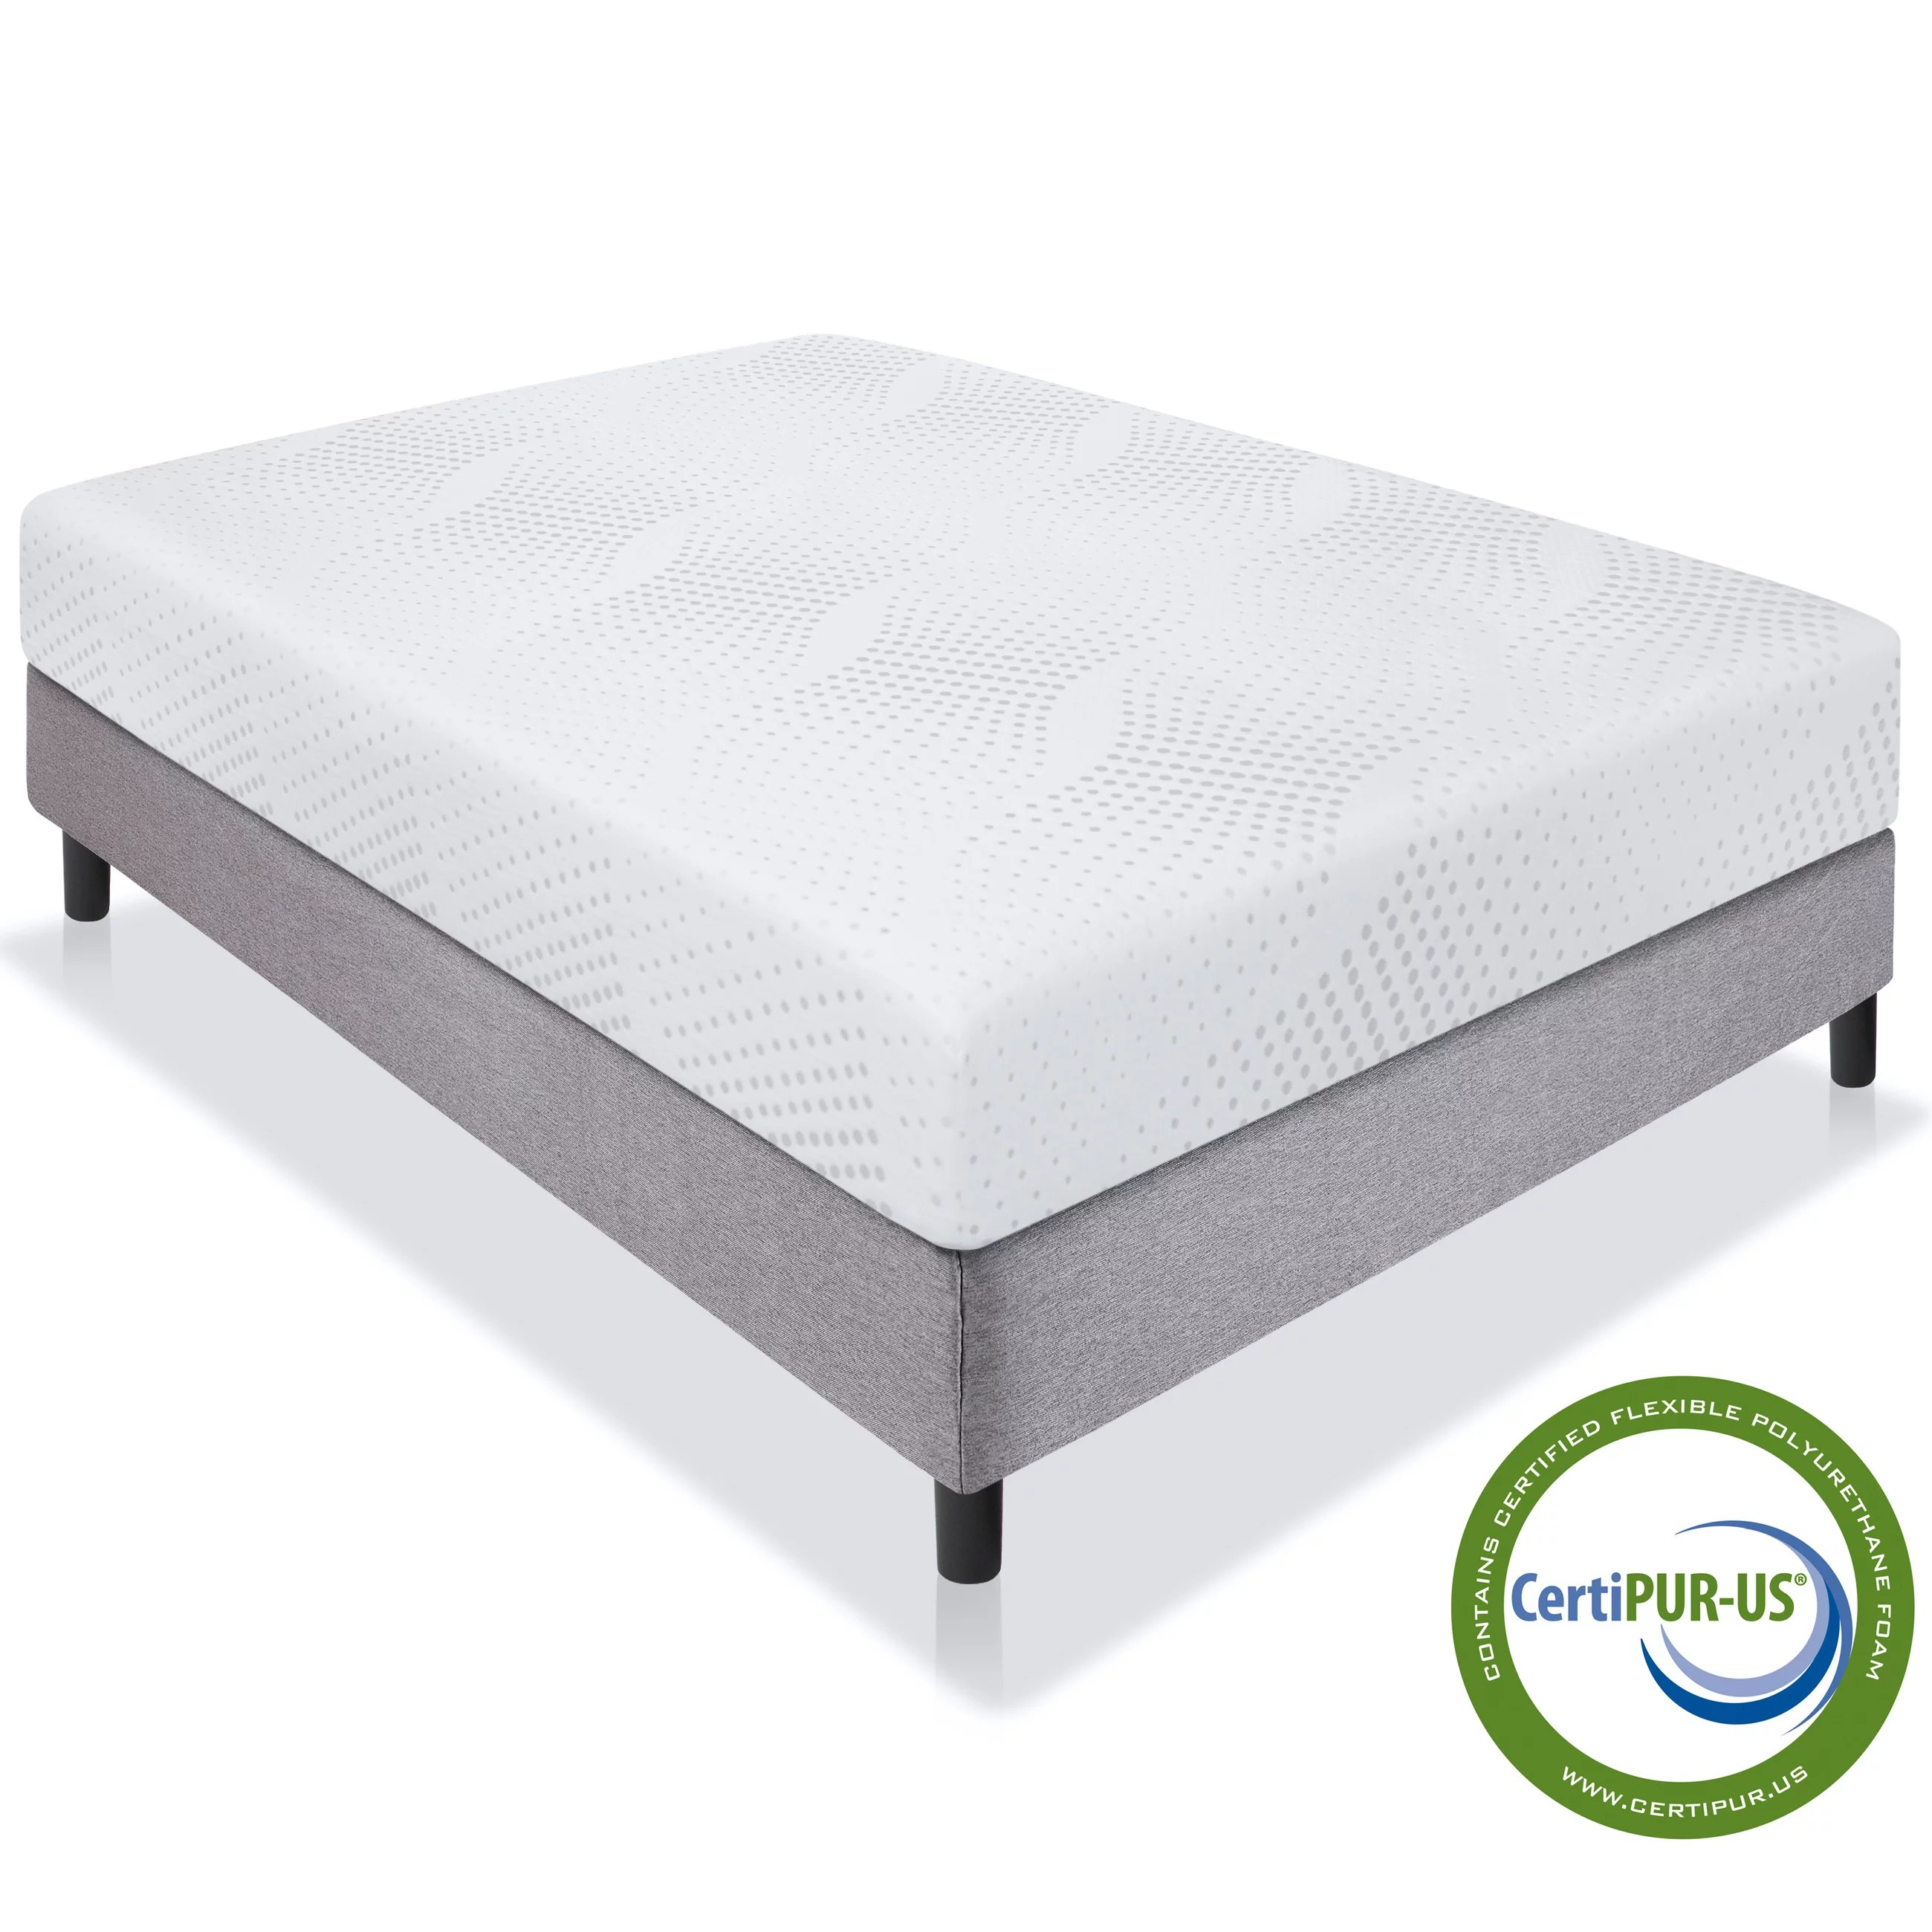 Expanded Queen Mattress Best Choice Products 10in Queen Size Dual Layered Medium Firm